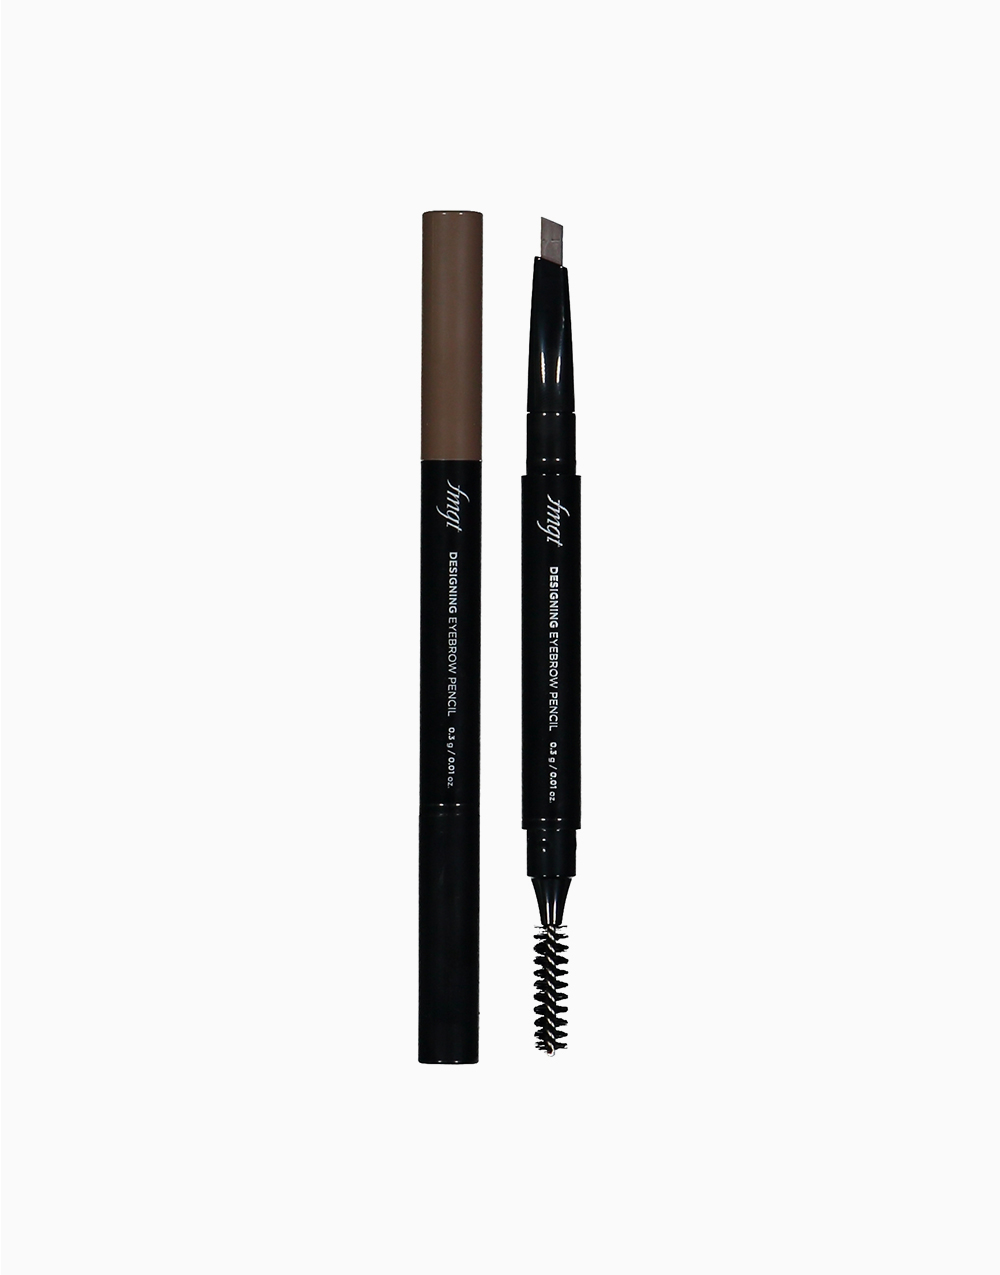 Designing Eyebrow Pencil (02 Gray Brown) by The Face Shop